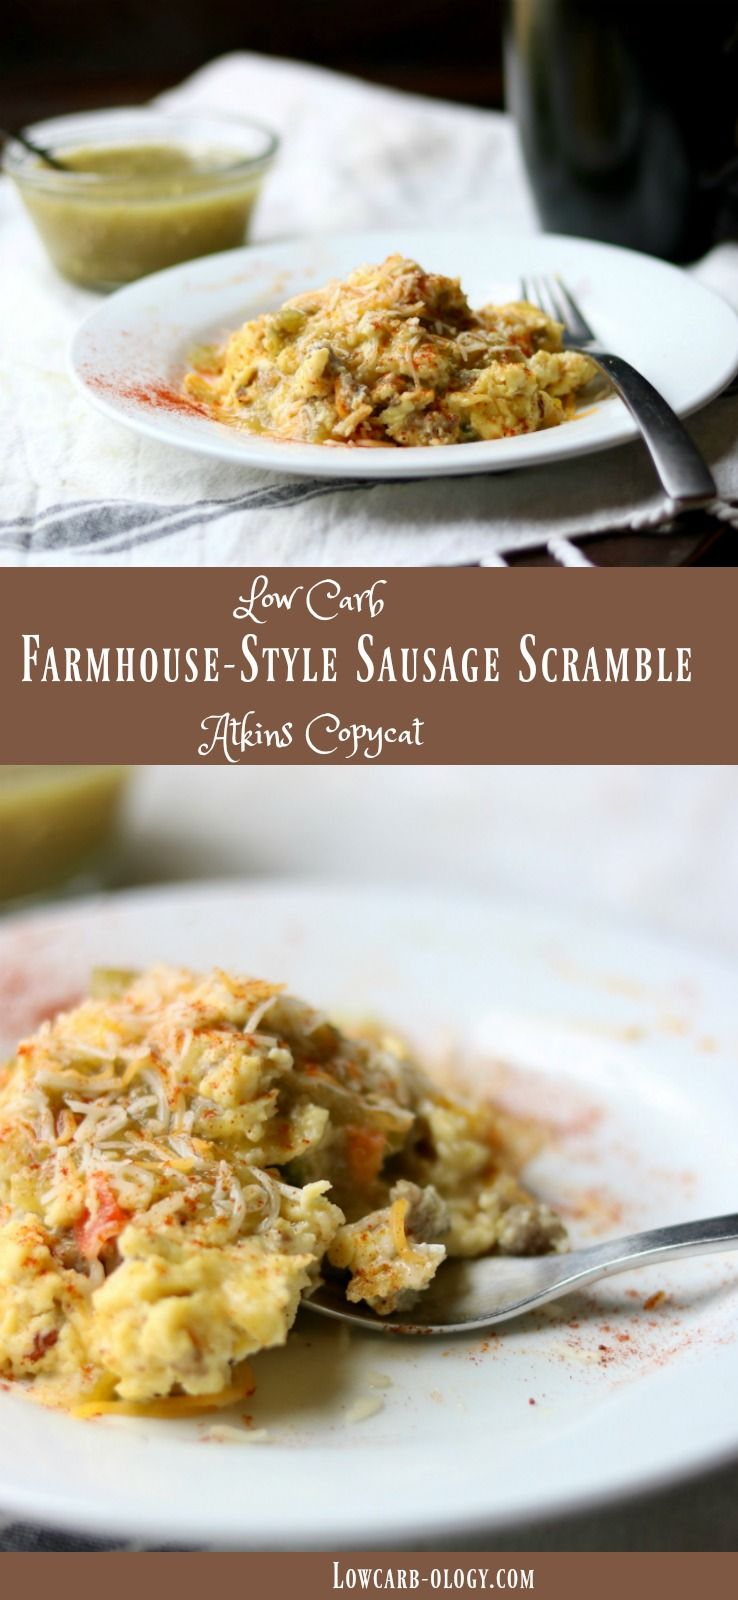 Easy breakfast sausage scramble is a yummy low carb breakfast idea! This recipe is a copycat of the Atkins Farmhouse-style scramble frozen meal... SO good! From Lowcarb-ology.com